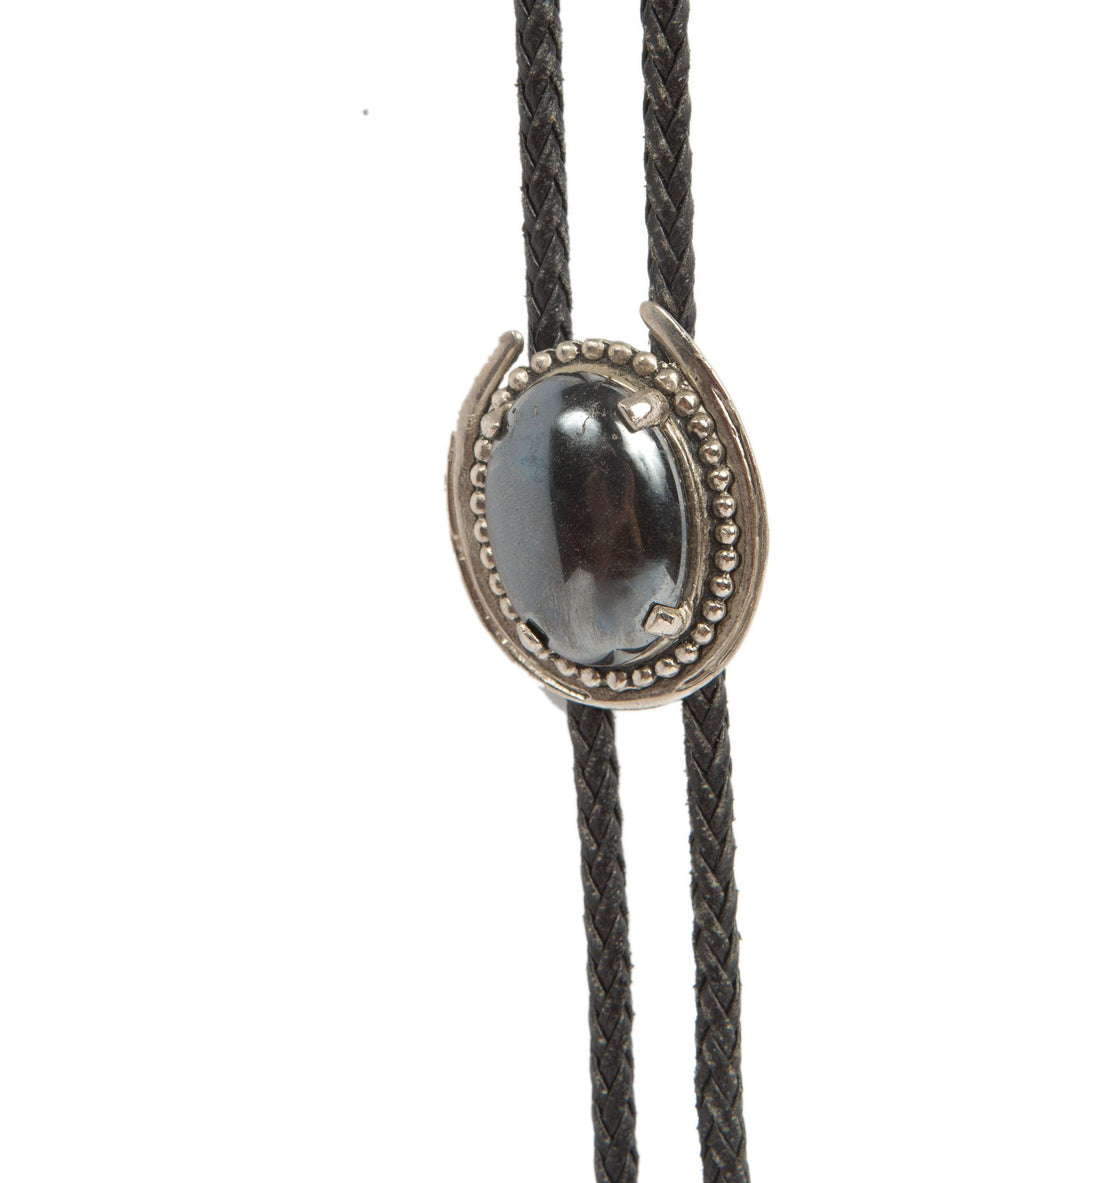 Vintage Horseshoe Black Marble Bolo Tie - Vintage: Women's - Iron and Resin